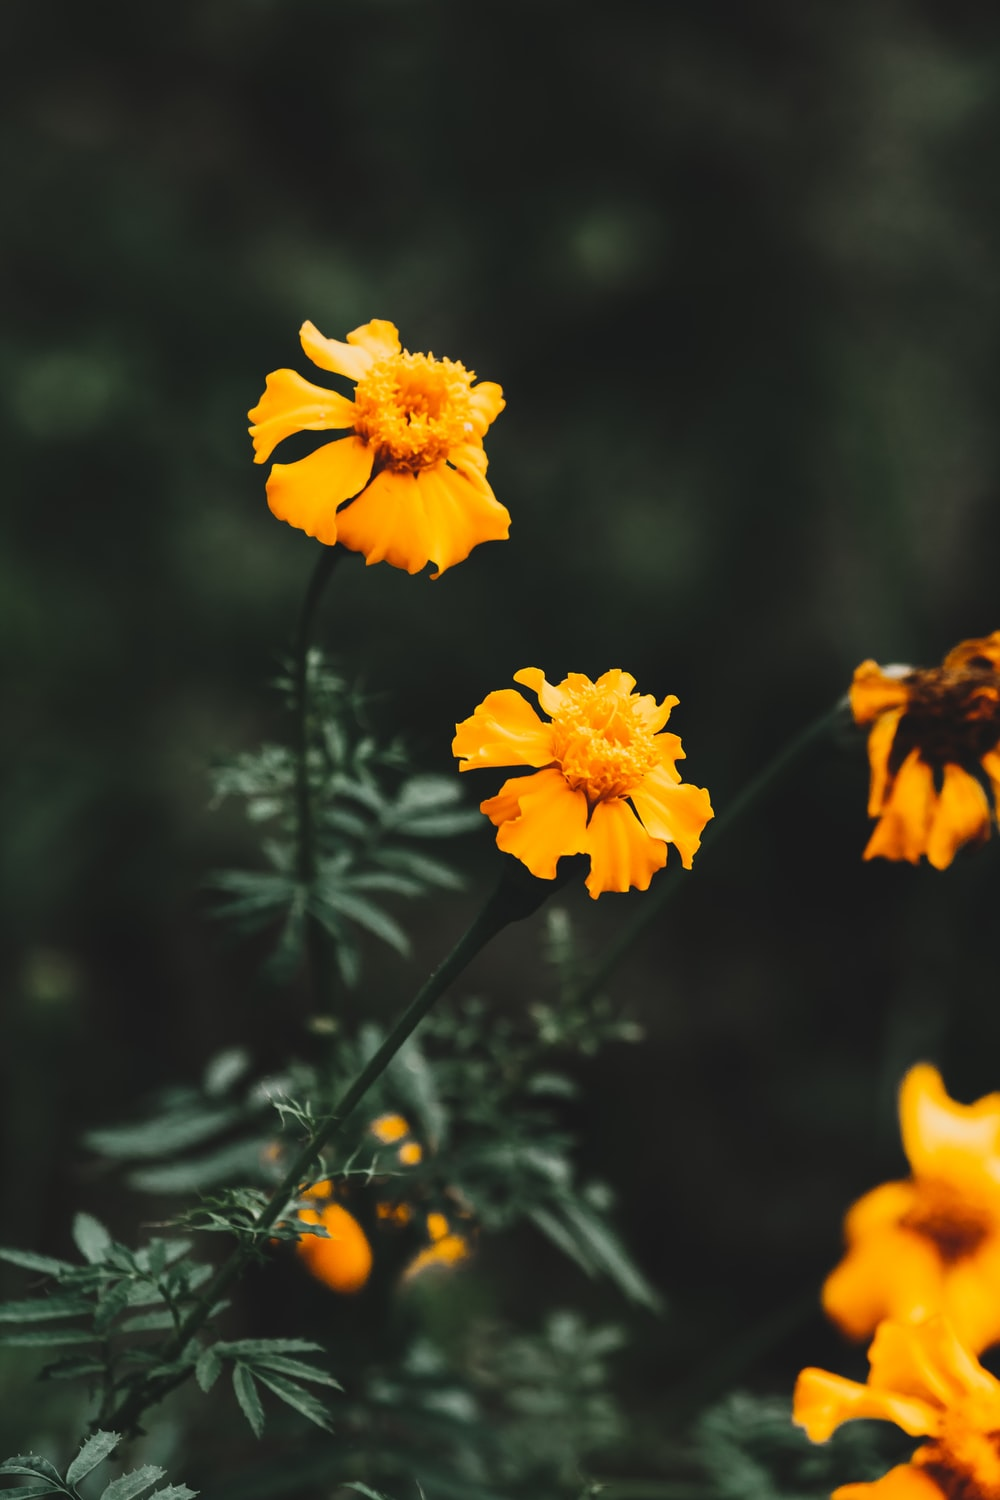 macro photography of yellow-petaled flowers during daytime